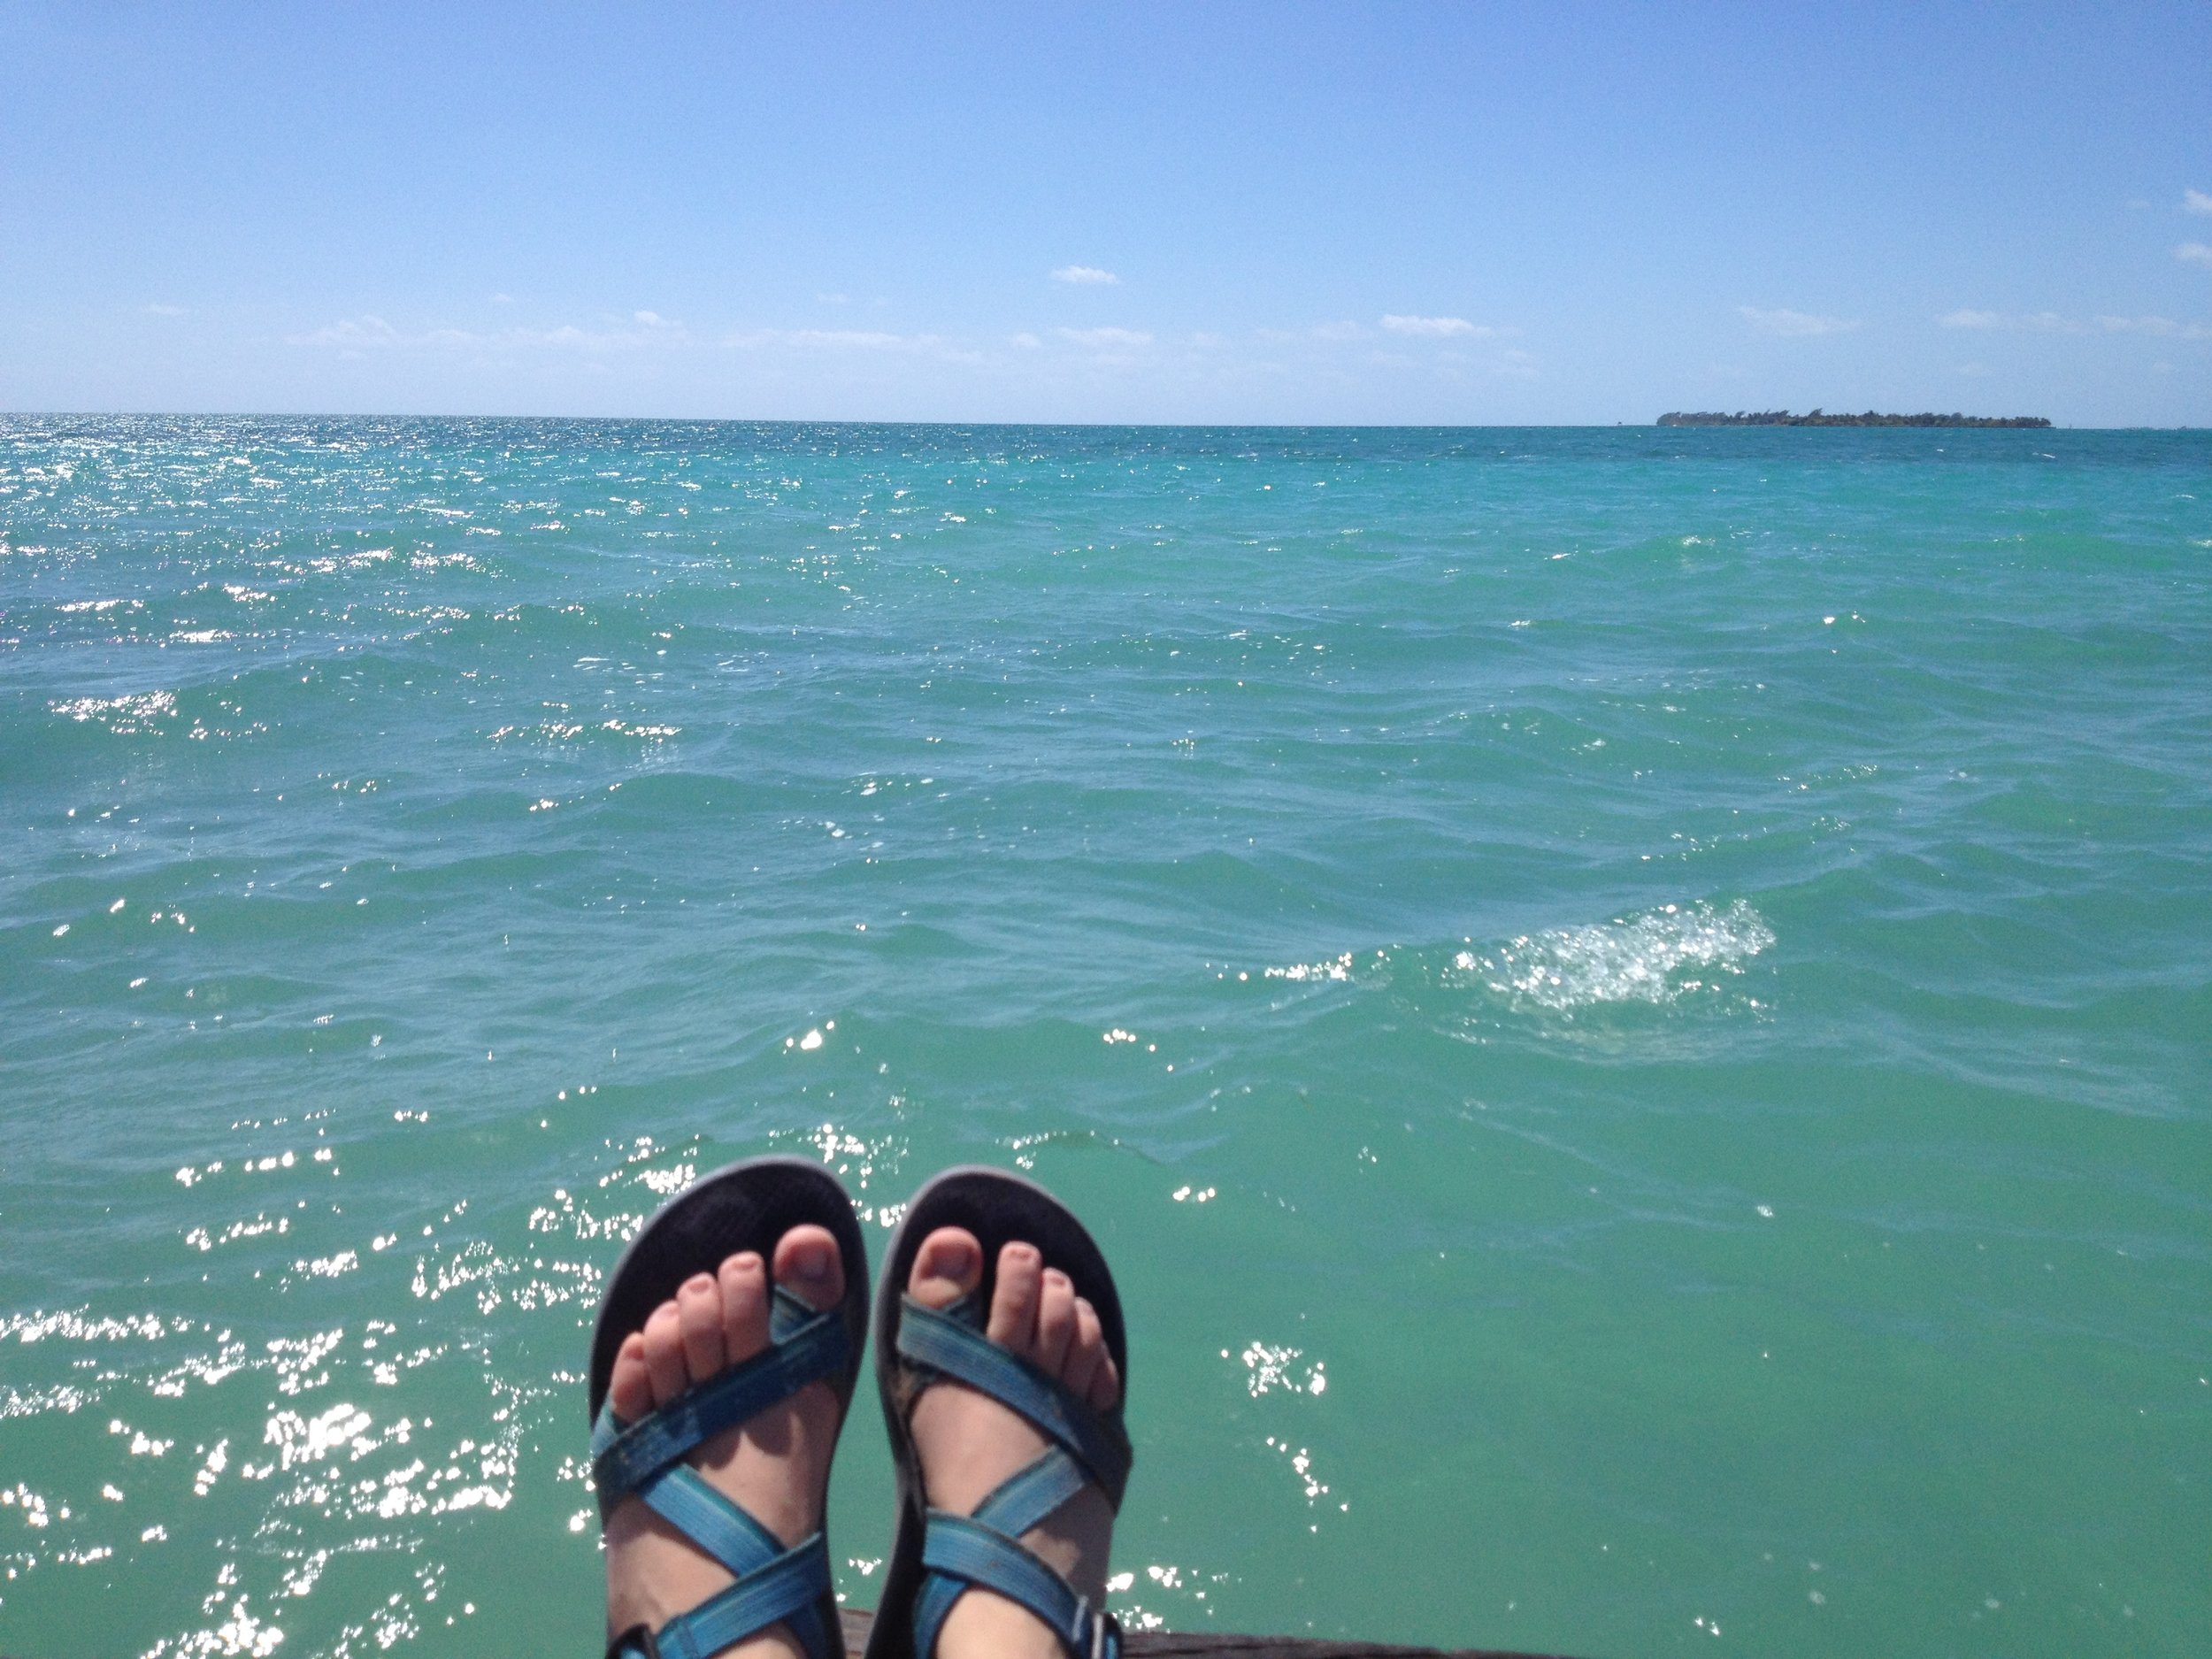 My Chacos over the water in Belize.  Because when you're praying and Jesus is healing you, you have to take a picture of it to make sure it really happened.